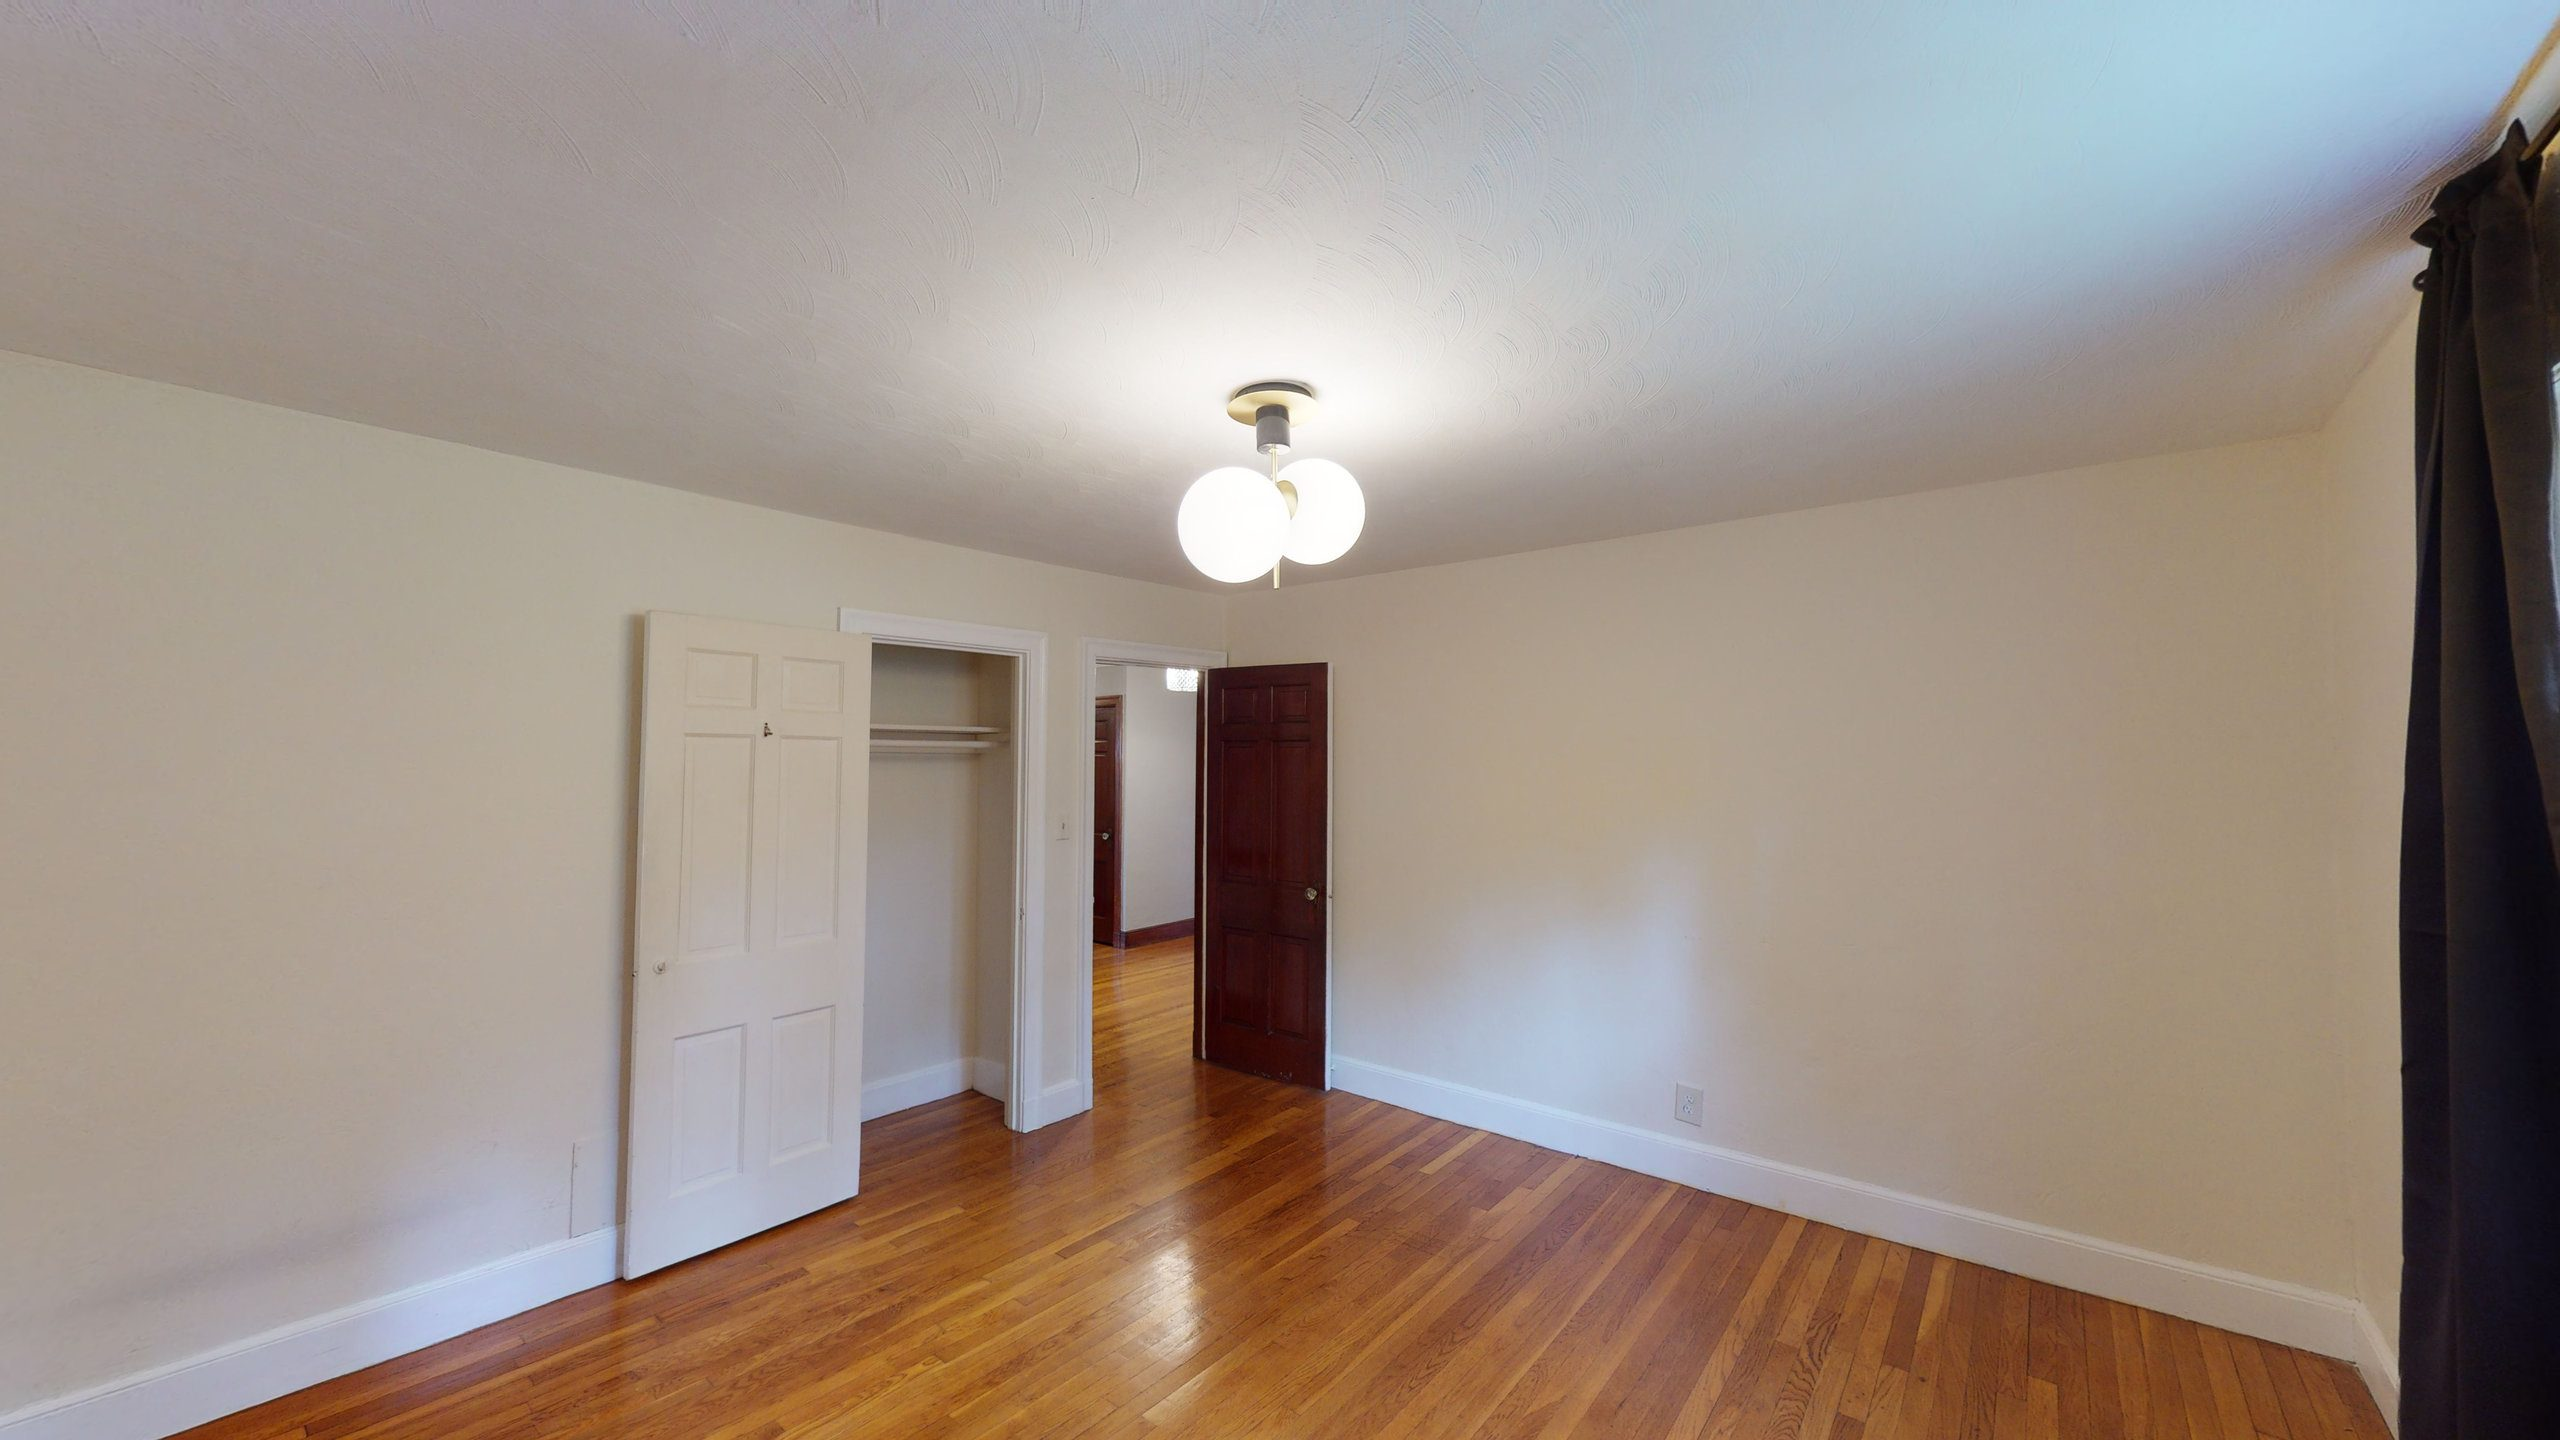 Photo of Full Room 1C (can be furnished or unfurnished) room June Homes